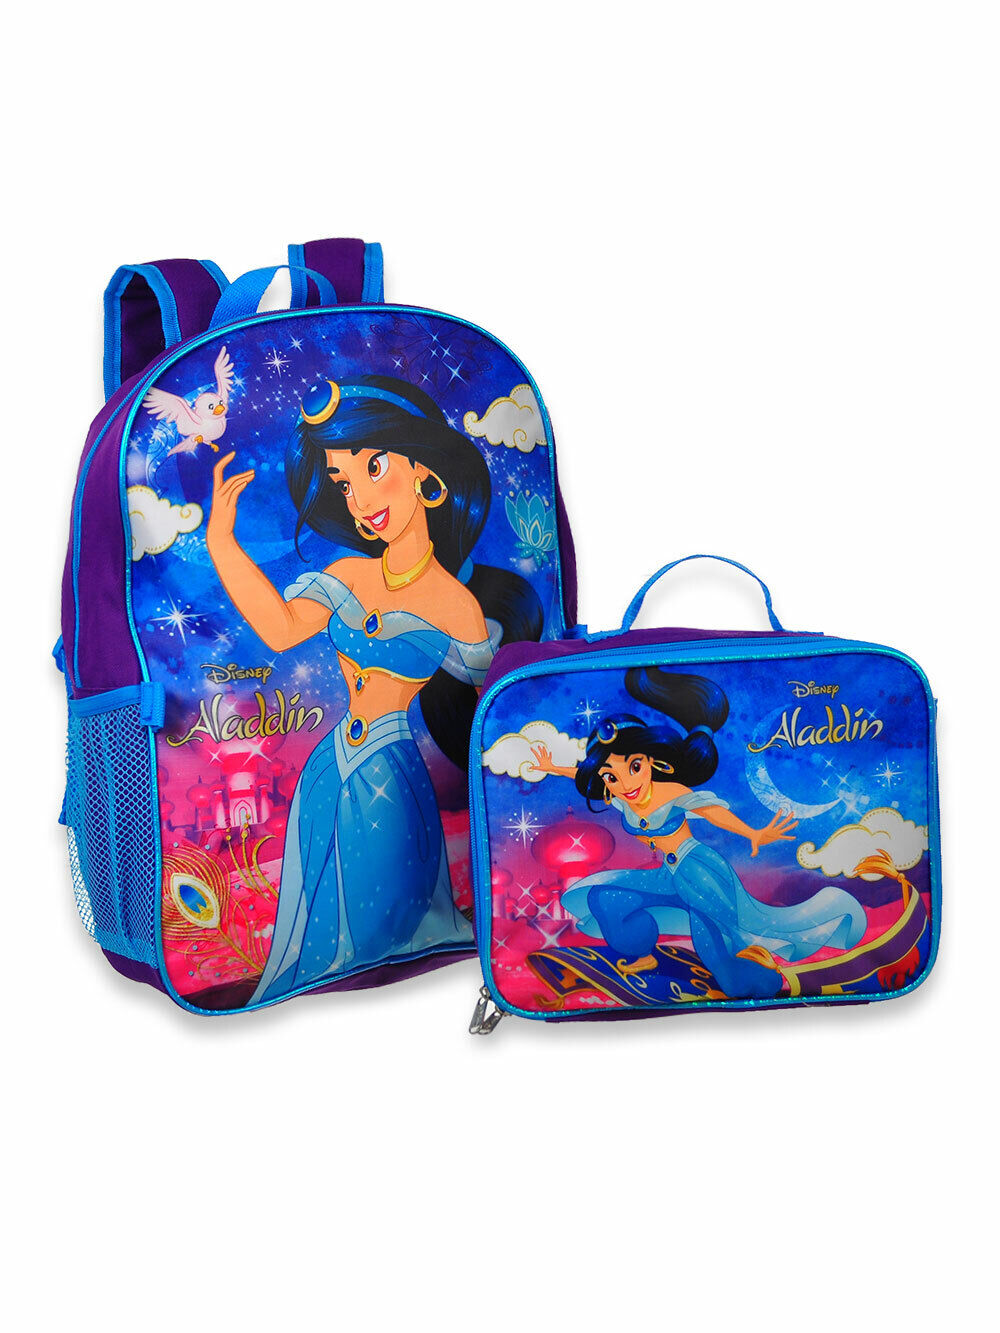 princess jasmine aladdin girls school backpack lunch